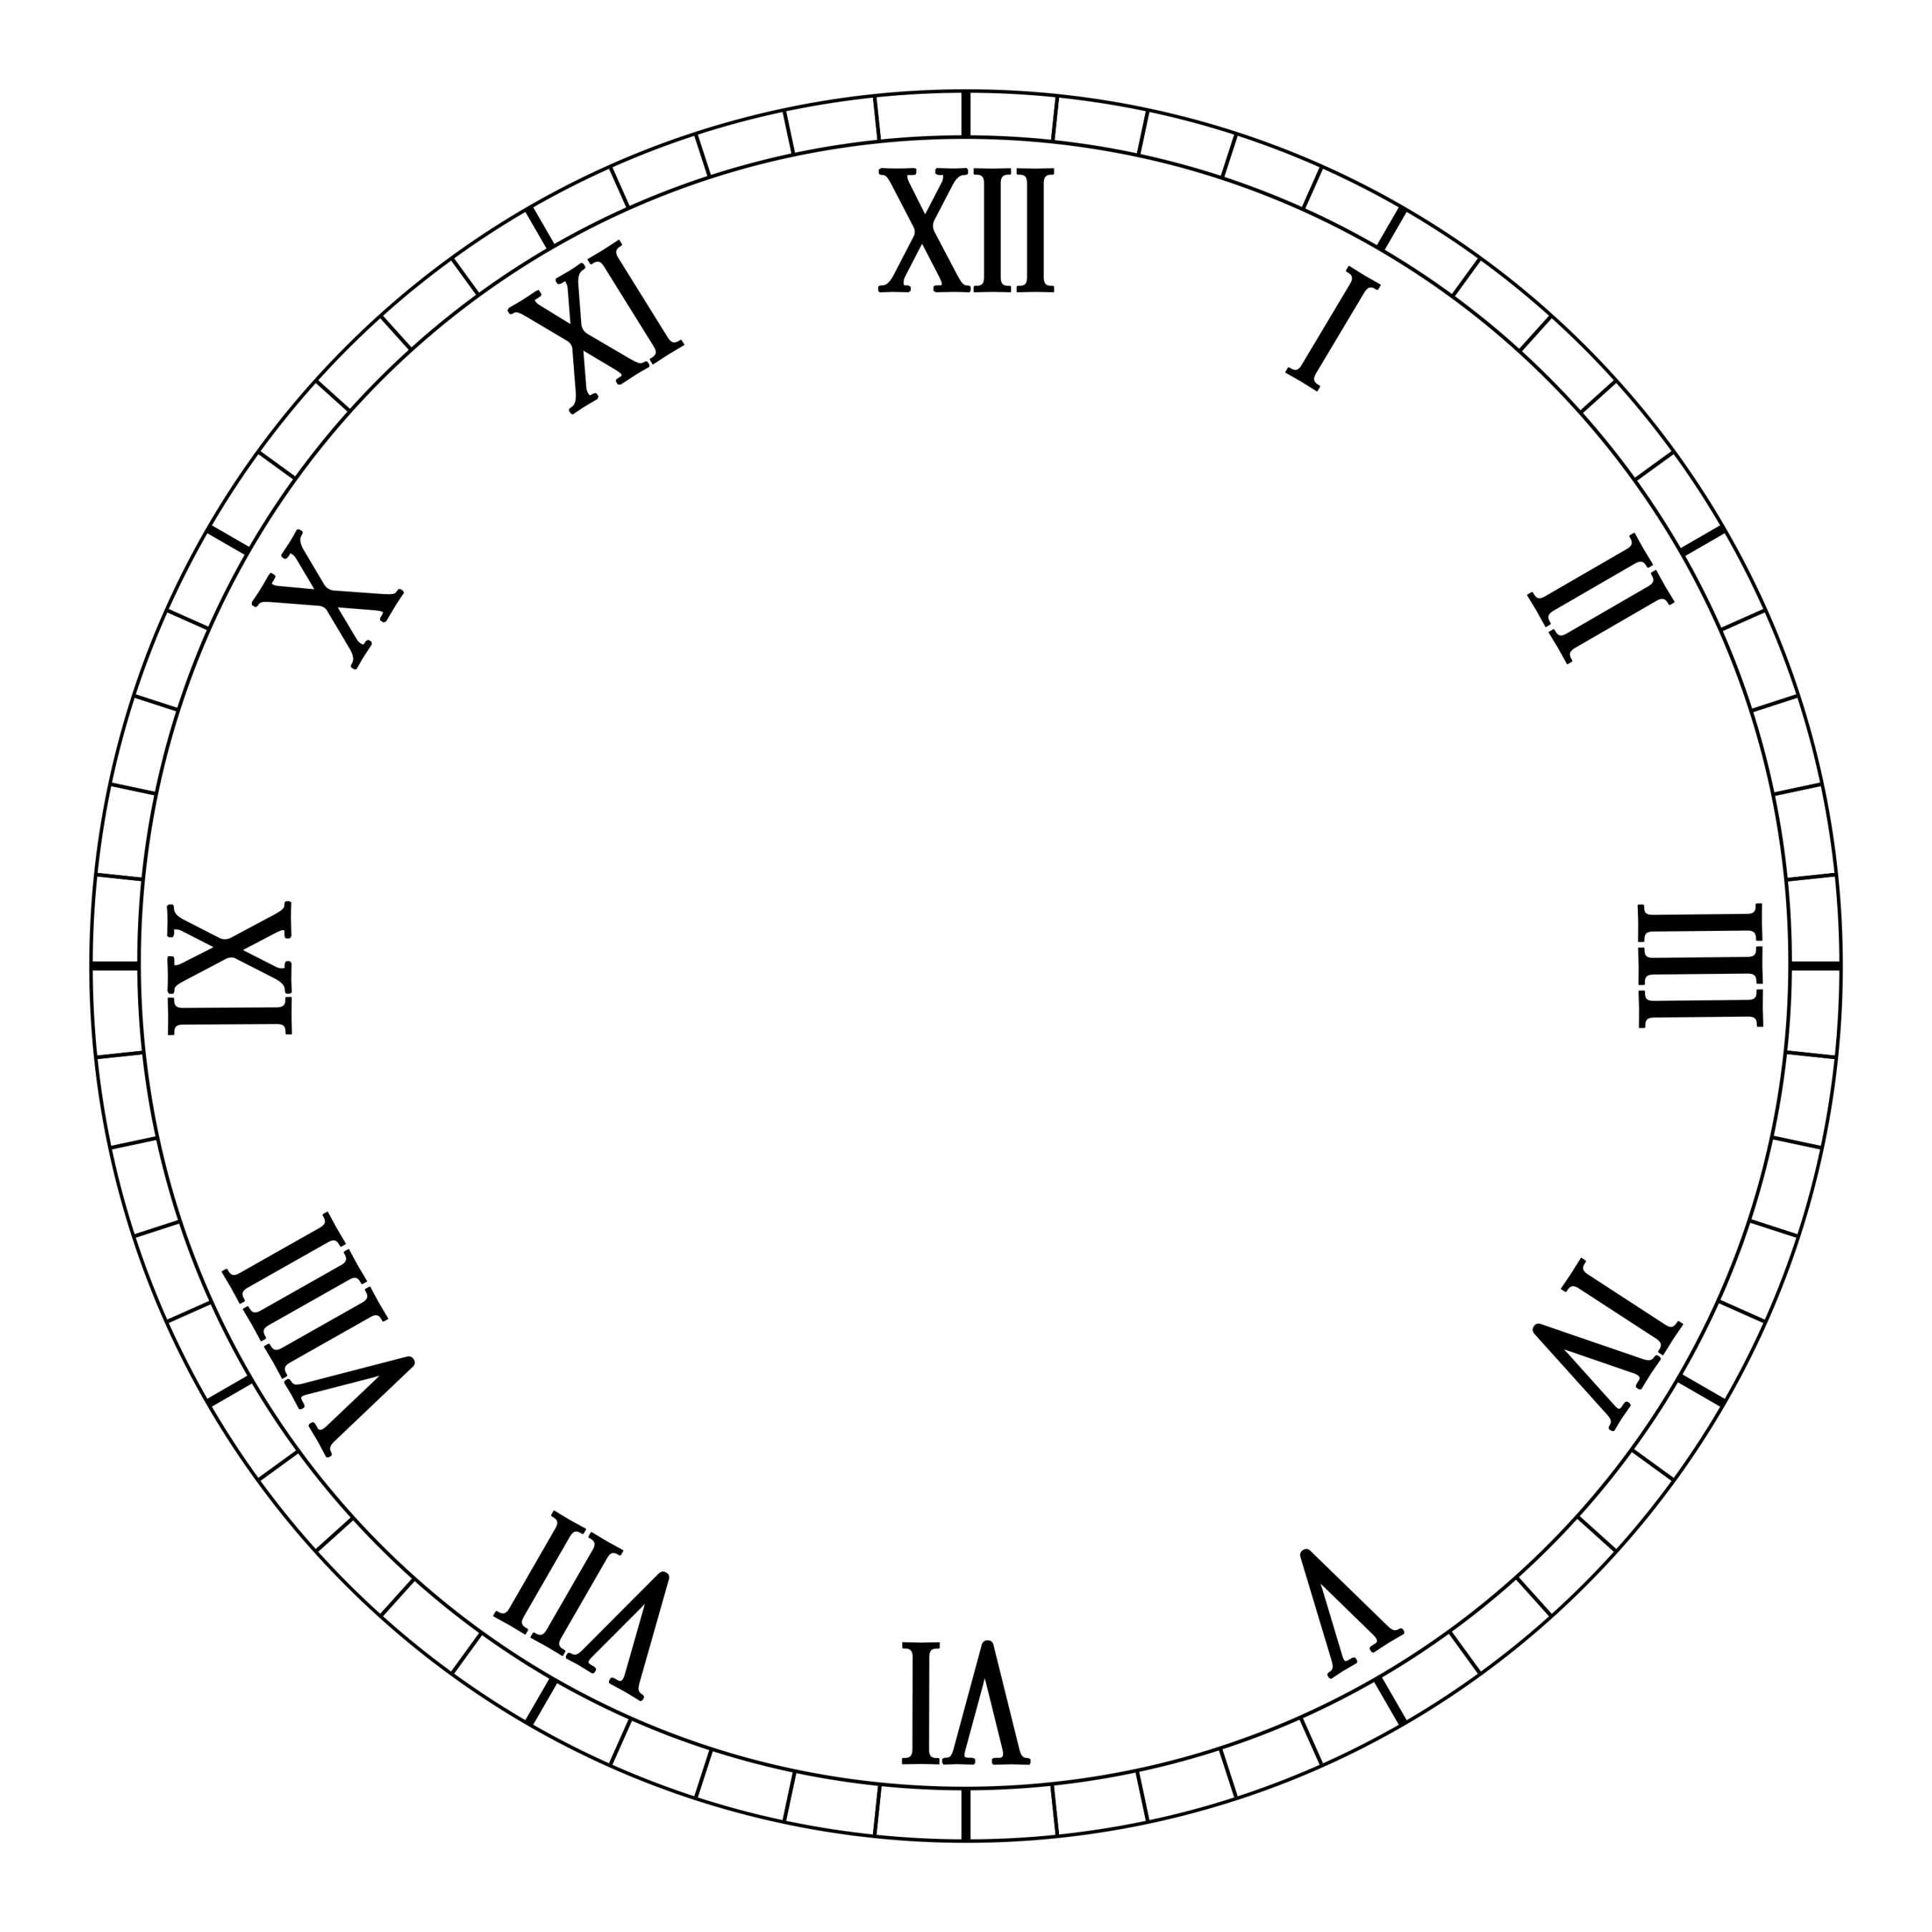 Clock Faces Without Hands